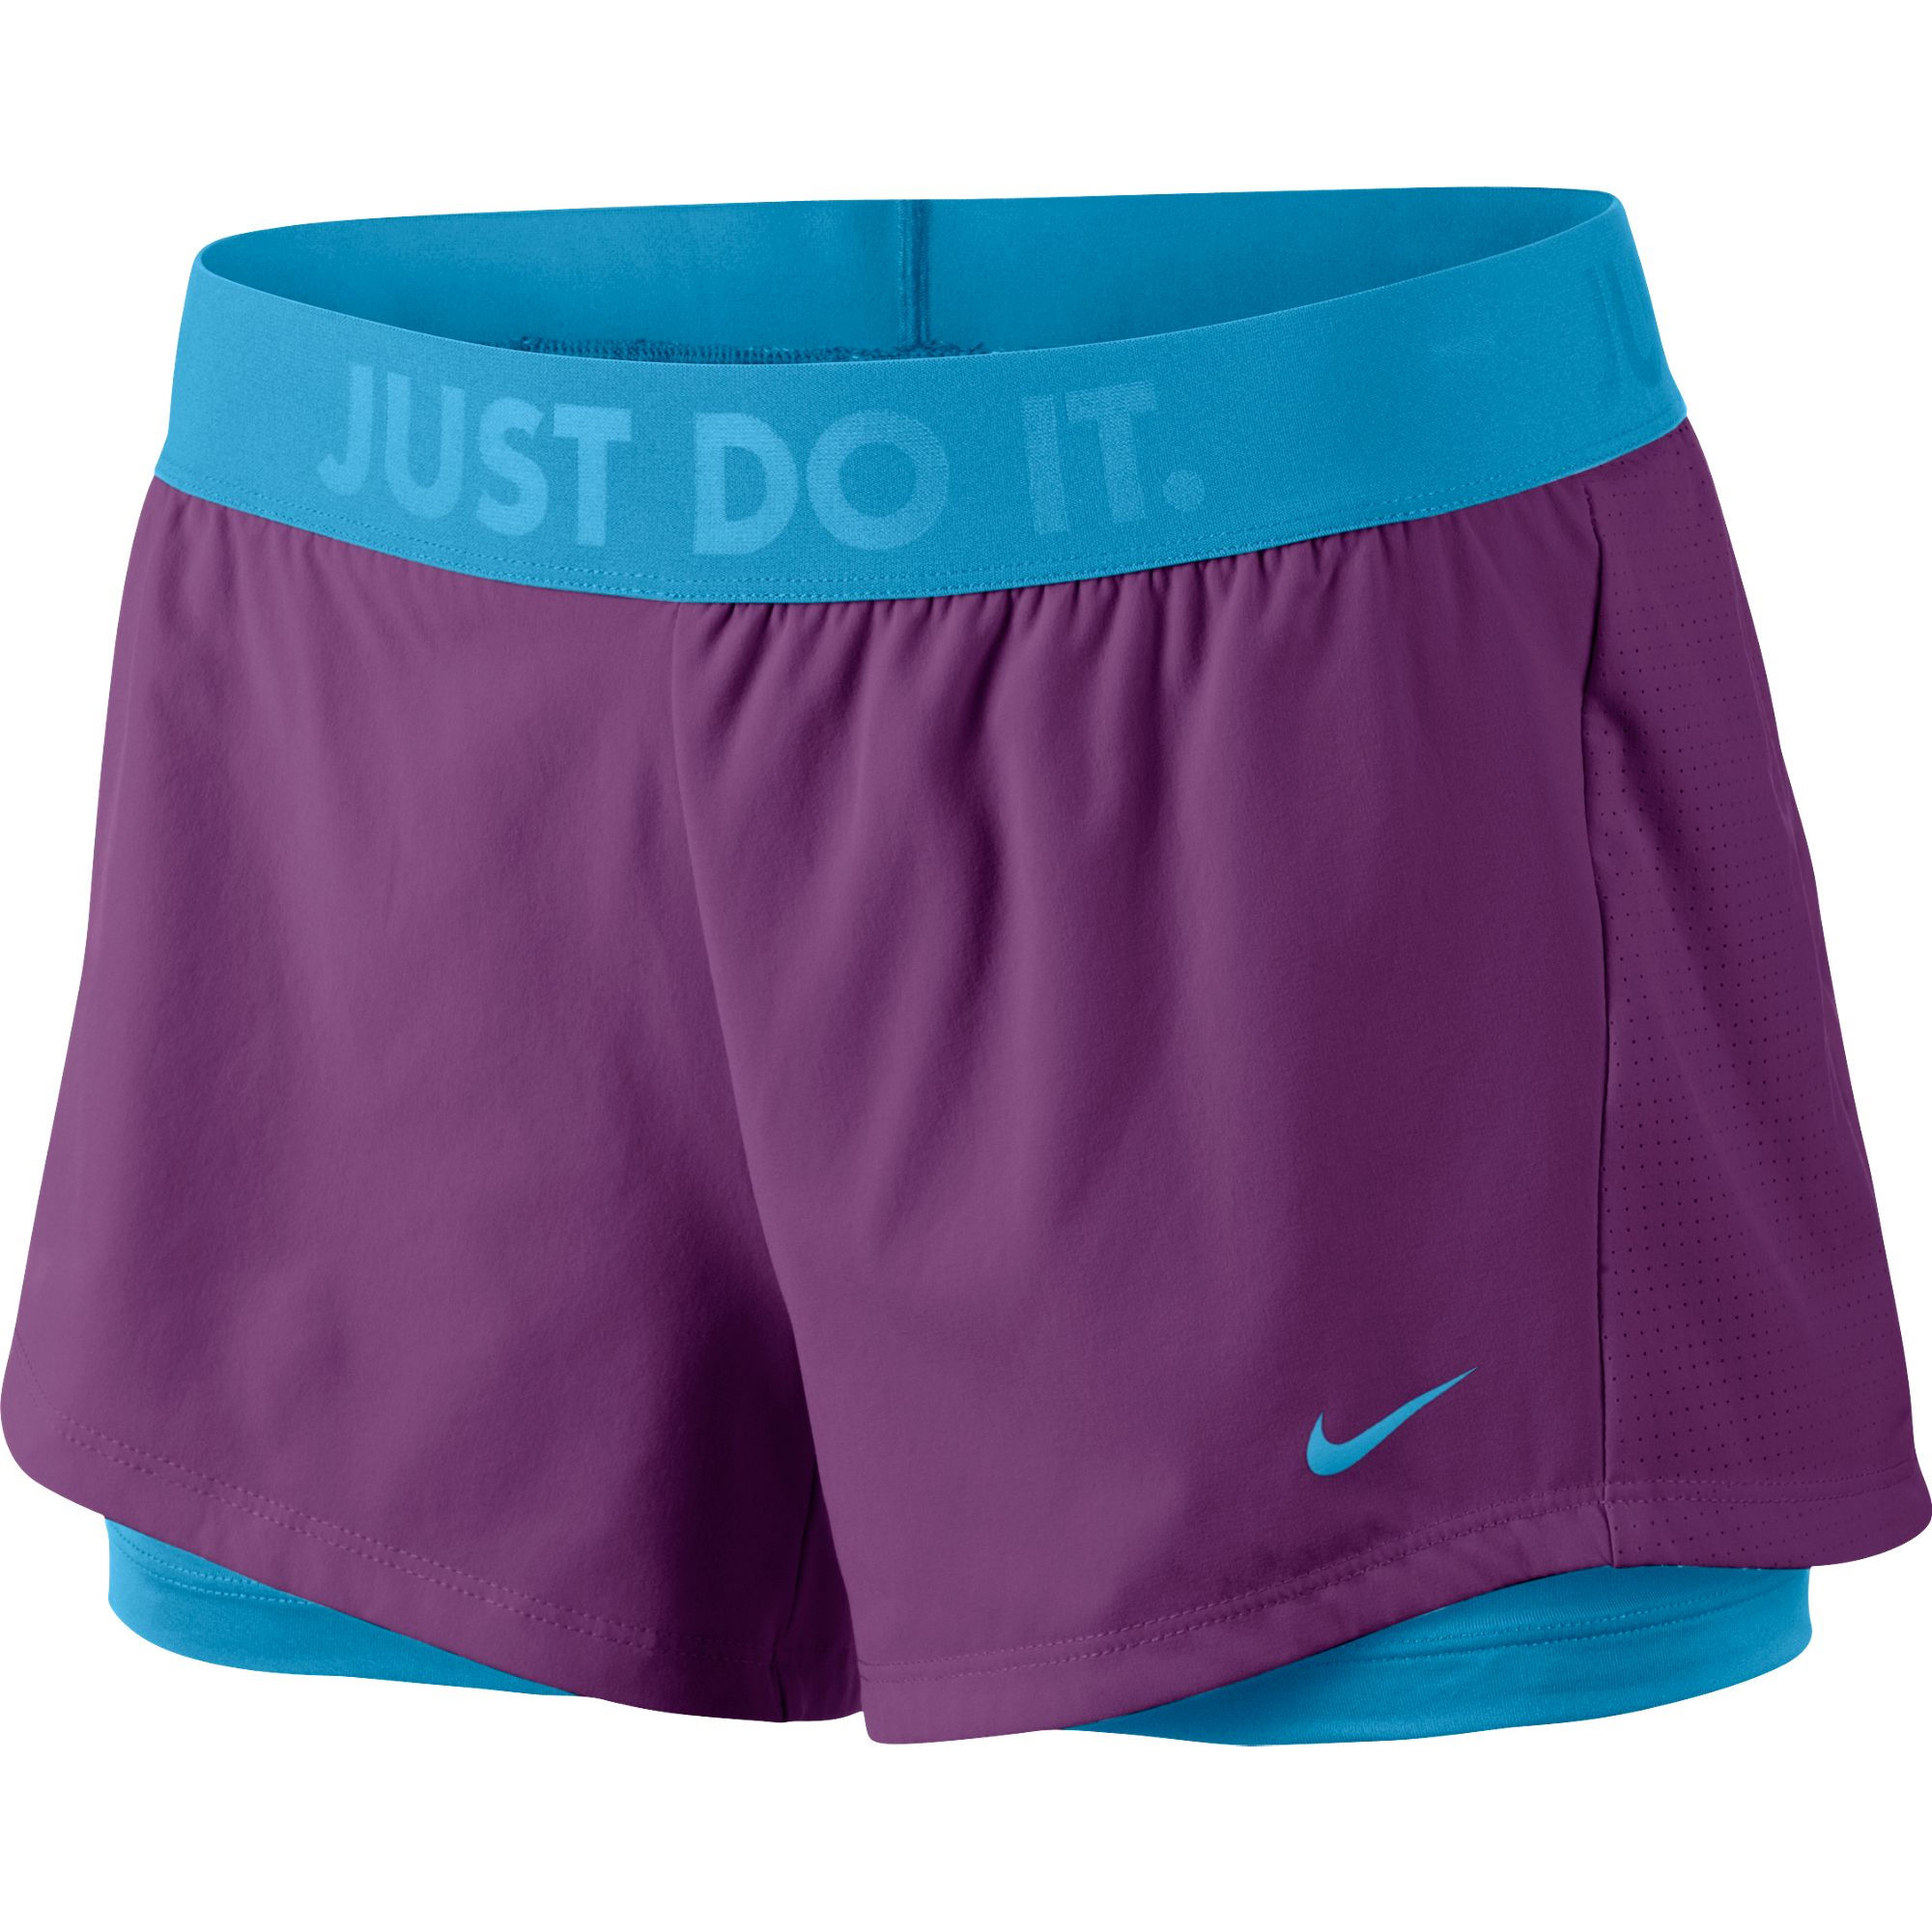 Nike womens running shorts with liner - Nike Women S Circuit 2 In 1 Woven Short Su14